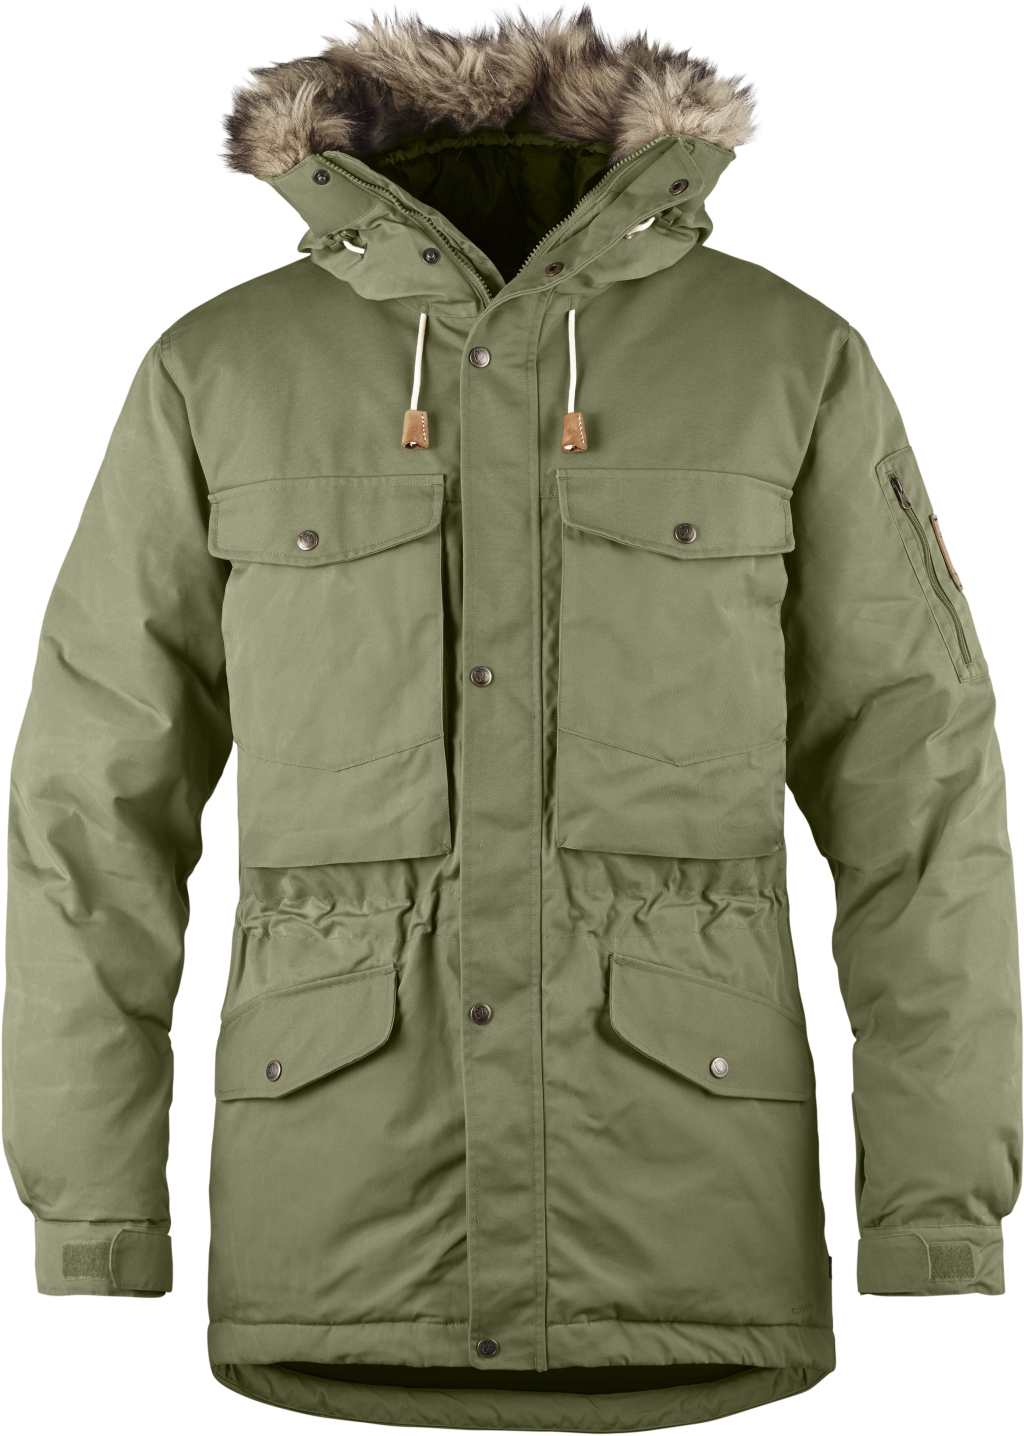 FjallRaven Singi Down Jacket Green-30